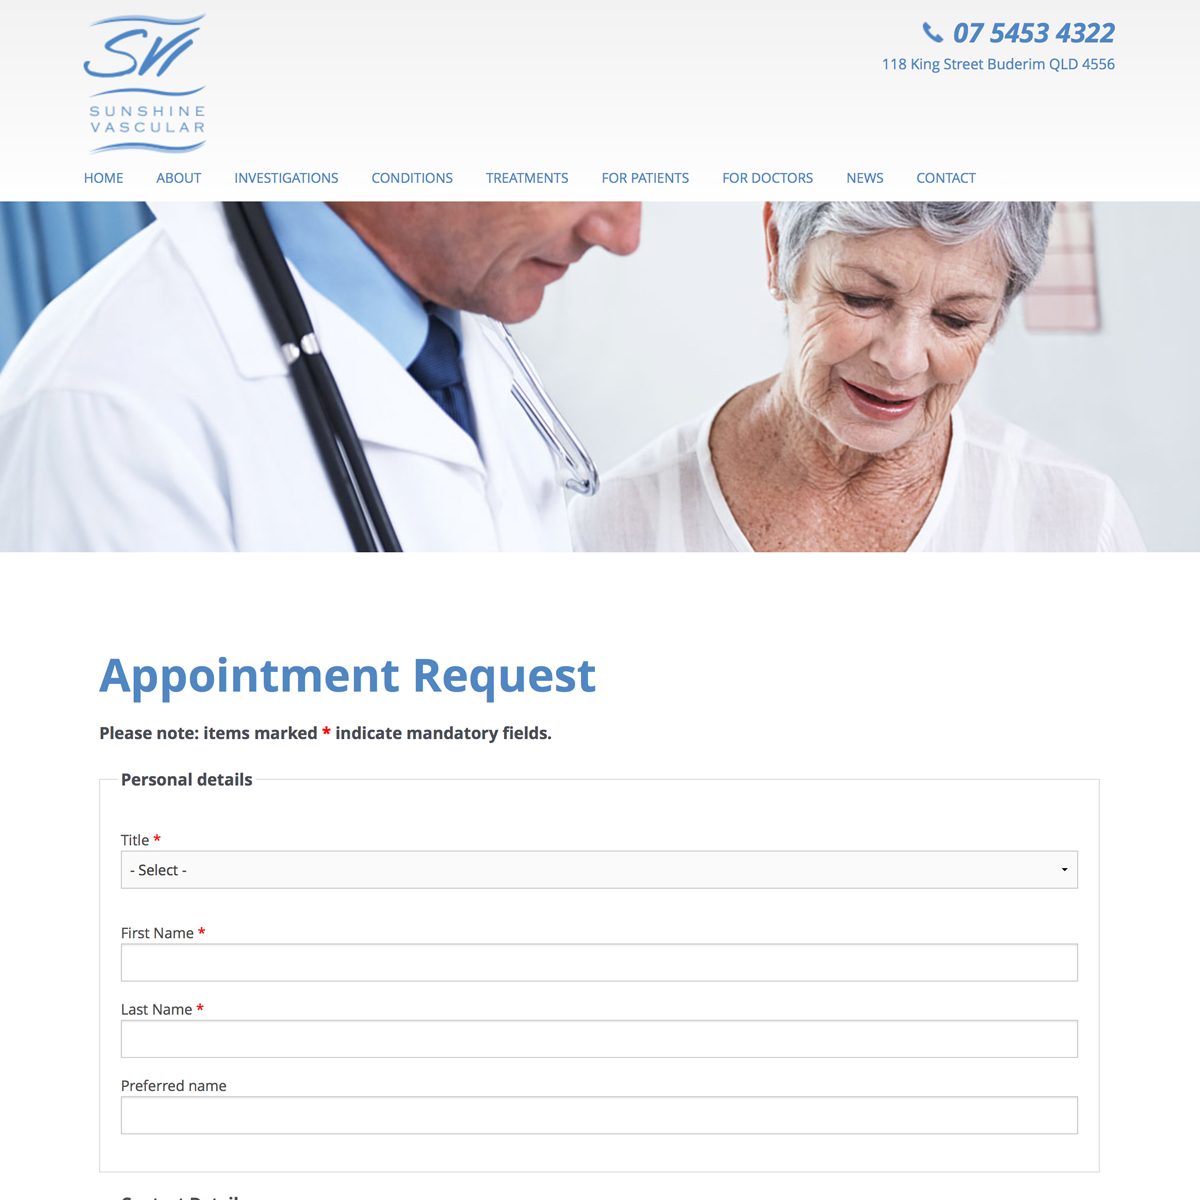 Sunshine Vascular - Appointment Request Form